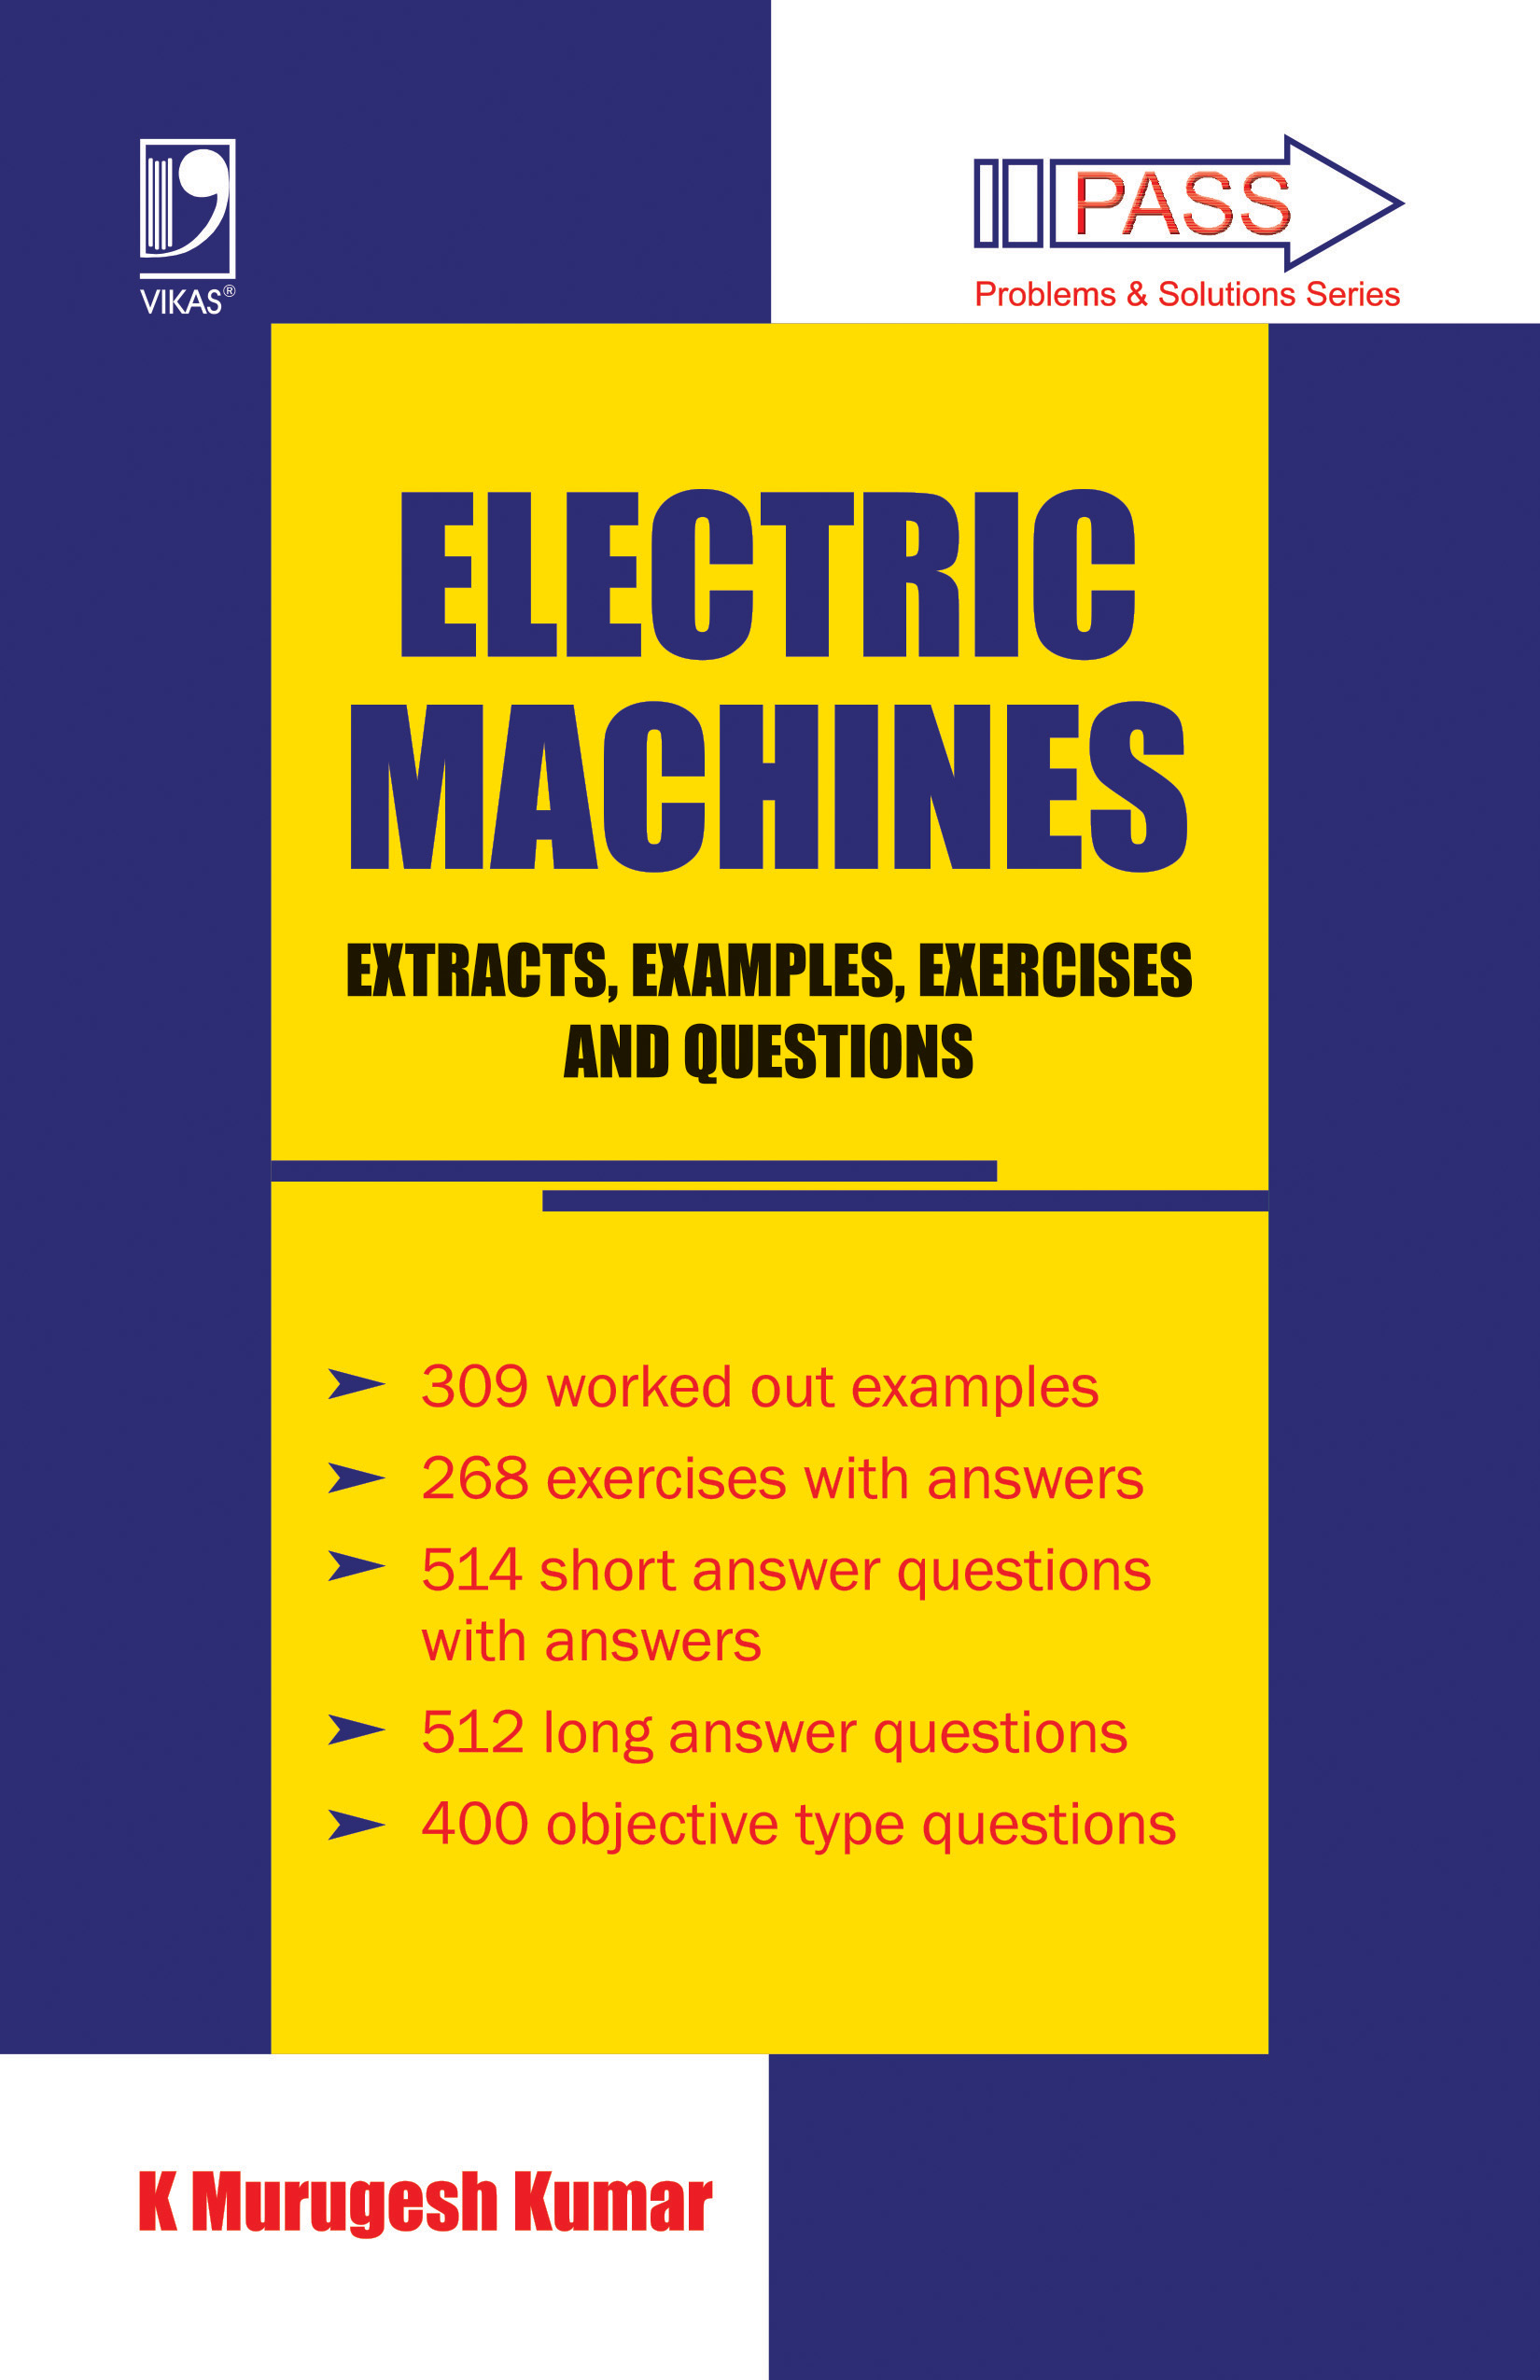 Electric Machines: Extracts, Examples, Exercises and Questions by K Murugesh Kumar